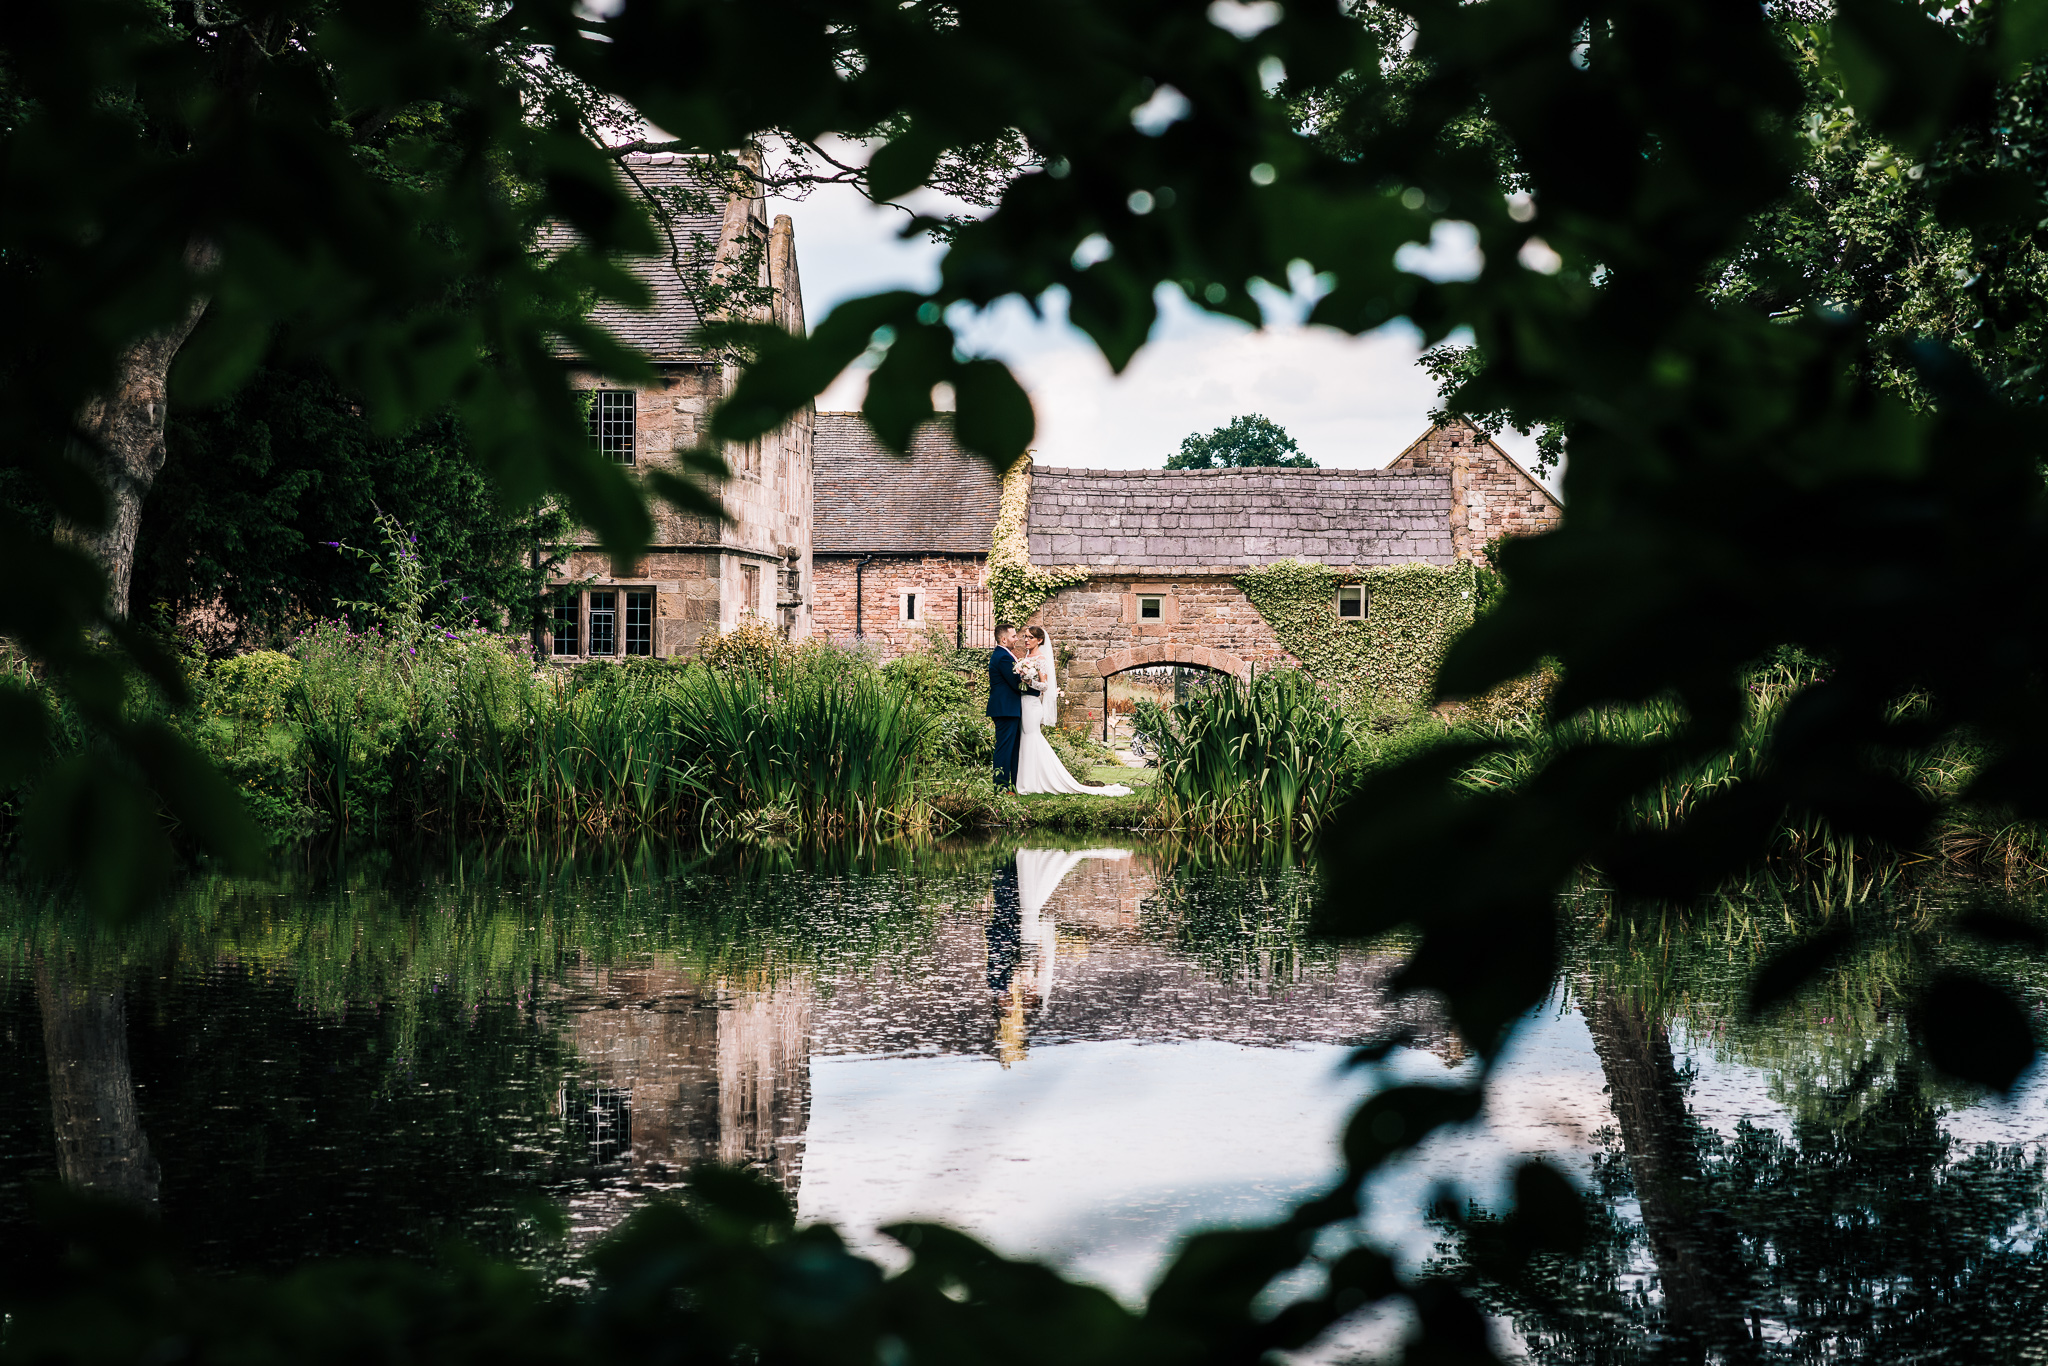 RECENT WEDDING PICTURE FROM THE ASHES STAFFORDSHIRE